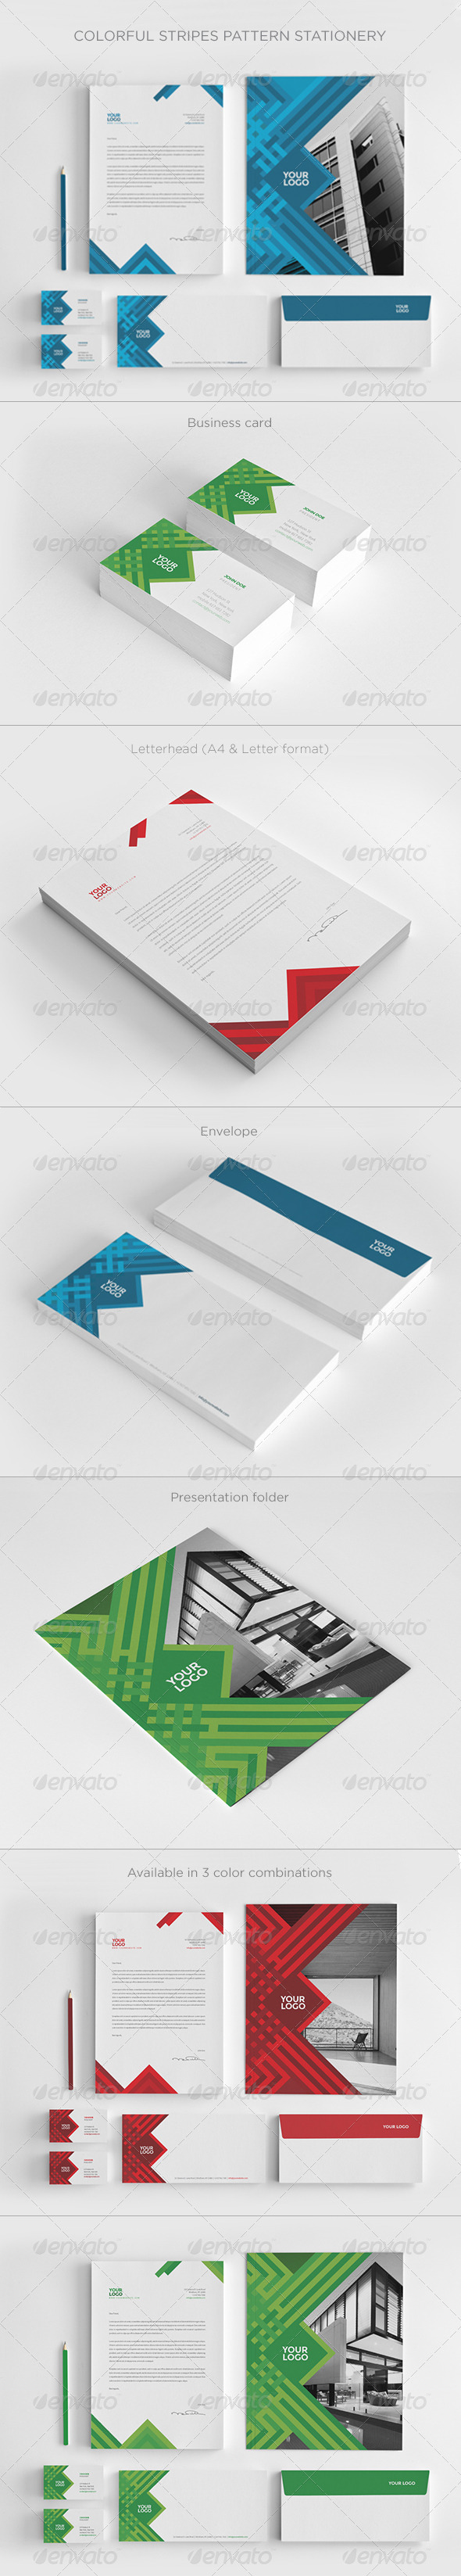 GraphicRiver Colorful Stripes Pattern Stationery 8570218